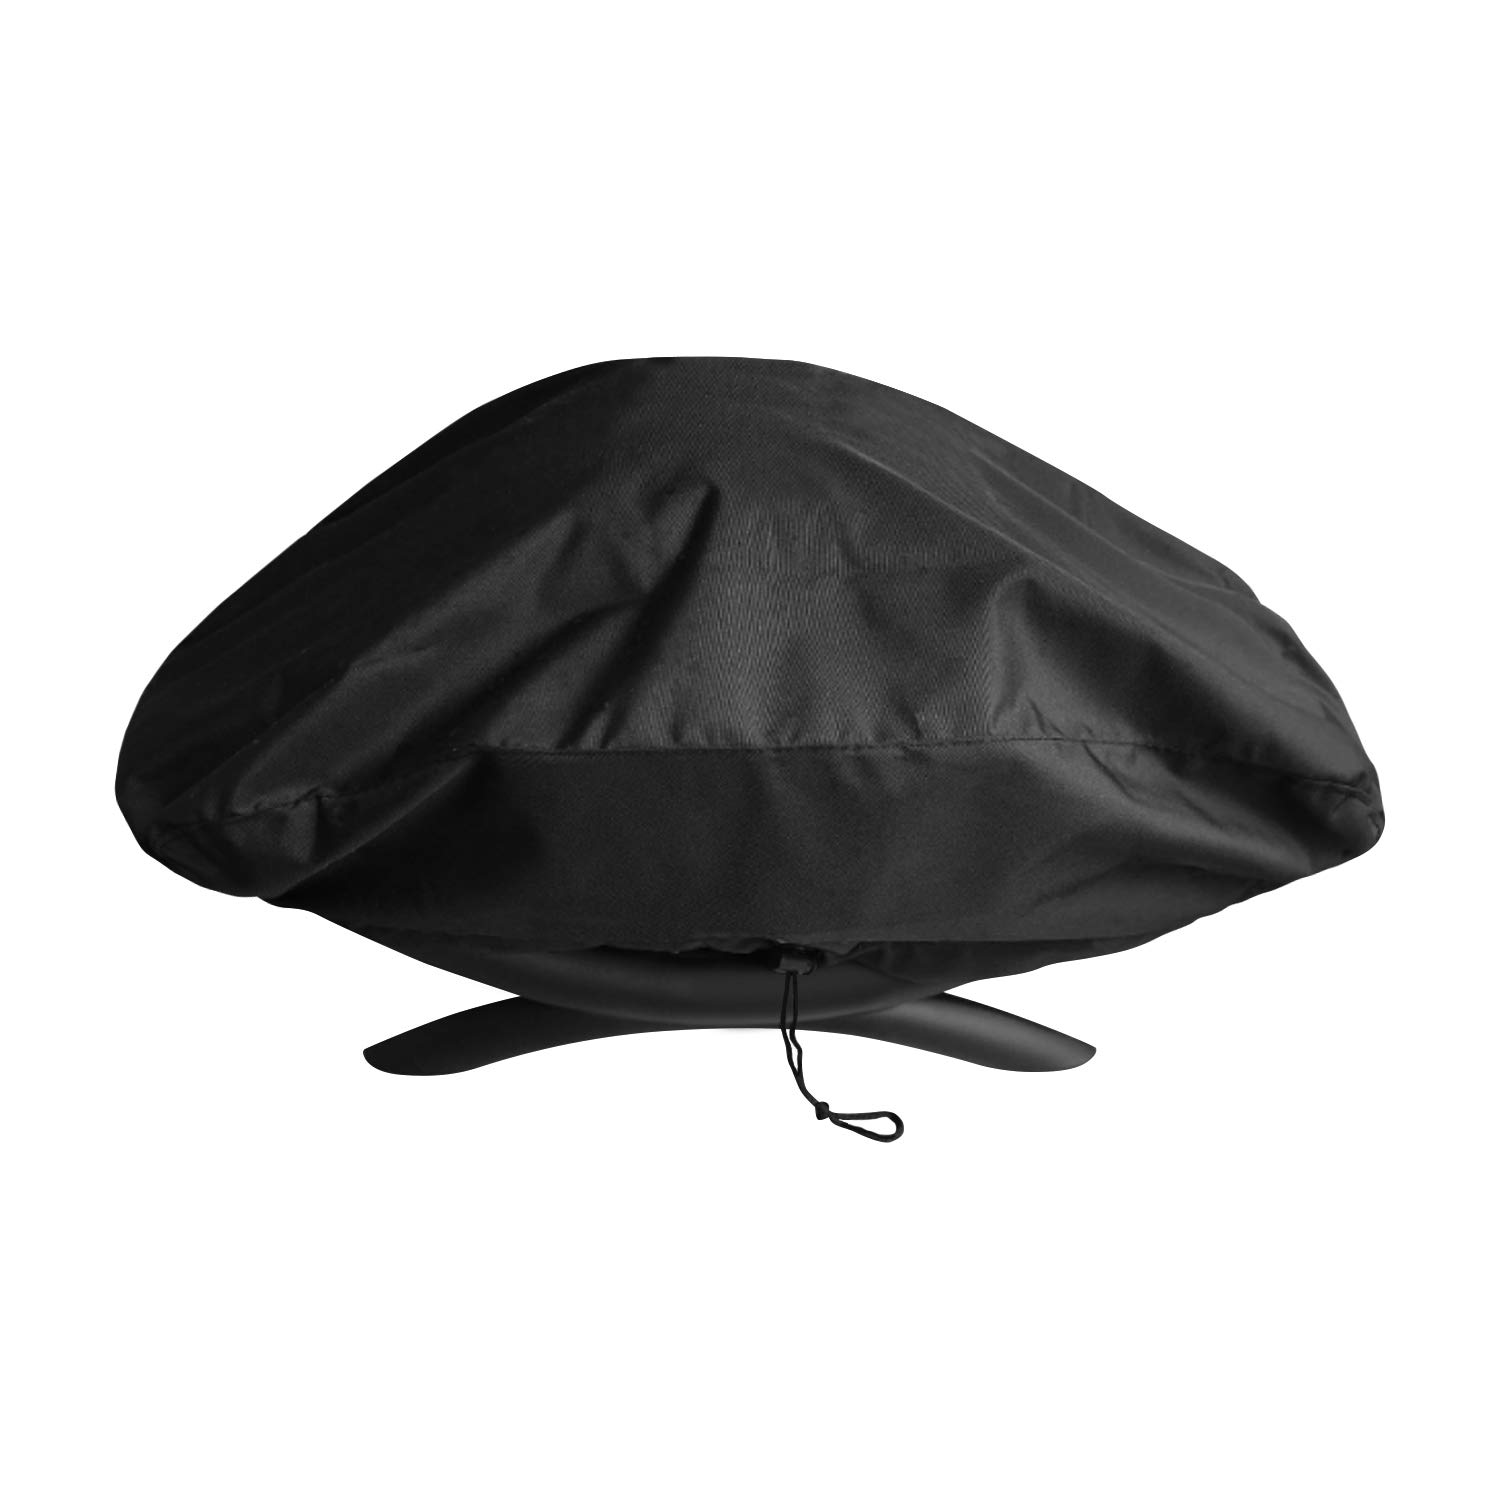 UNICOOK Heavy Duty Waterproof Portable Grill Cover for Weber Q2000, Q200 Series and Baby Q Gas Grill, Compared to Weber 7111, Special Fade and UV Resistant Material, Black